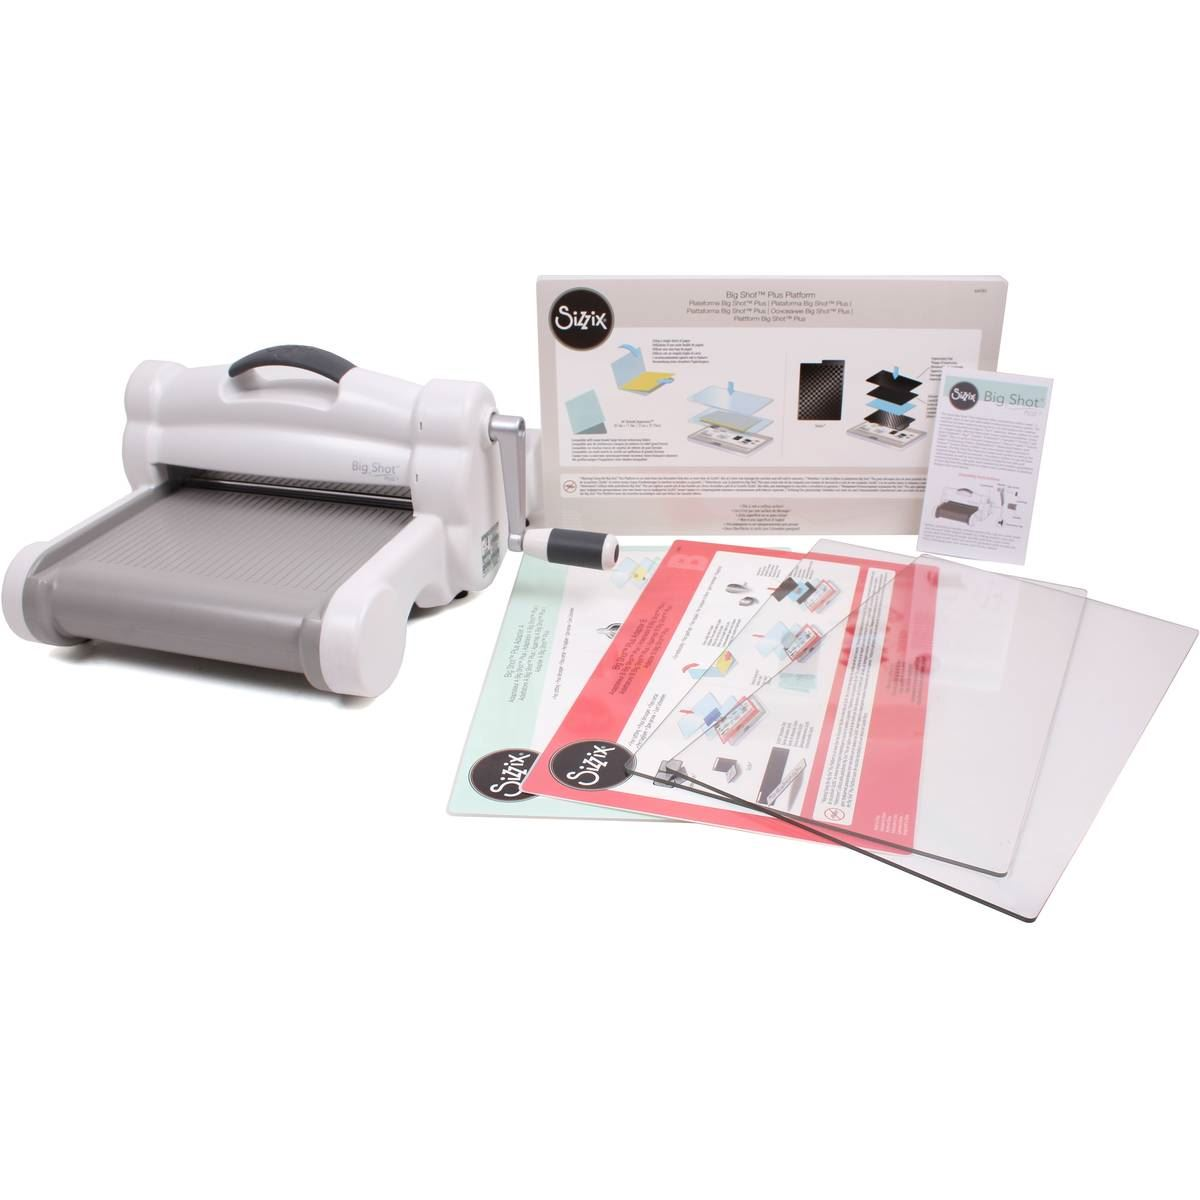 sizzix big shot plus a4 machine die cutting scrapbook